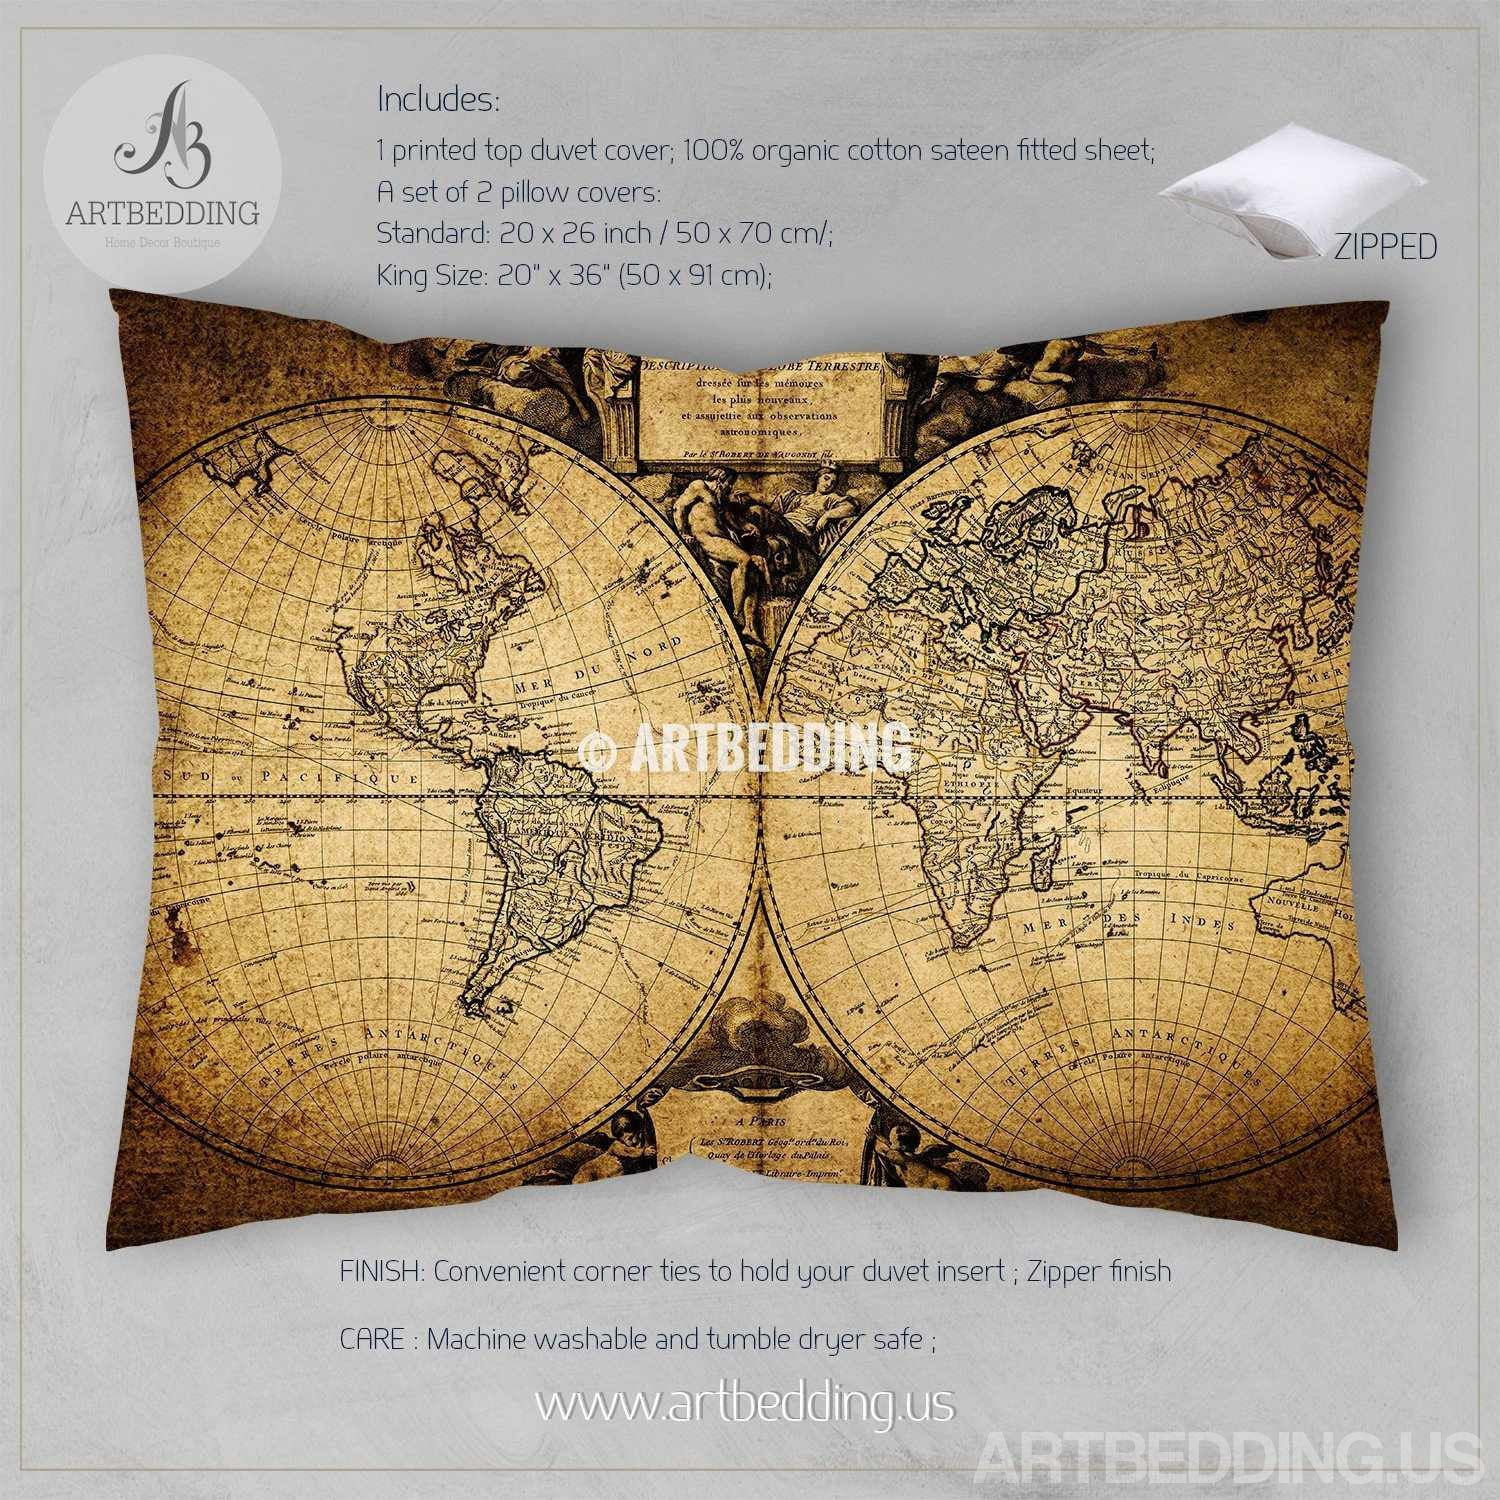 Vintage world map bedding antique map of the world 1752 duvet cover vintage map bedding vintage old map duvet cover antique map queen king vintage world gumiabroncs Image collections